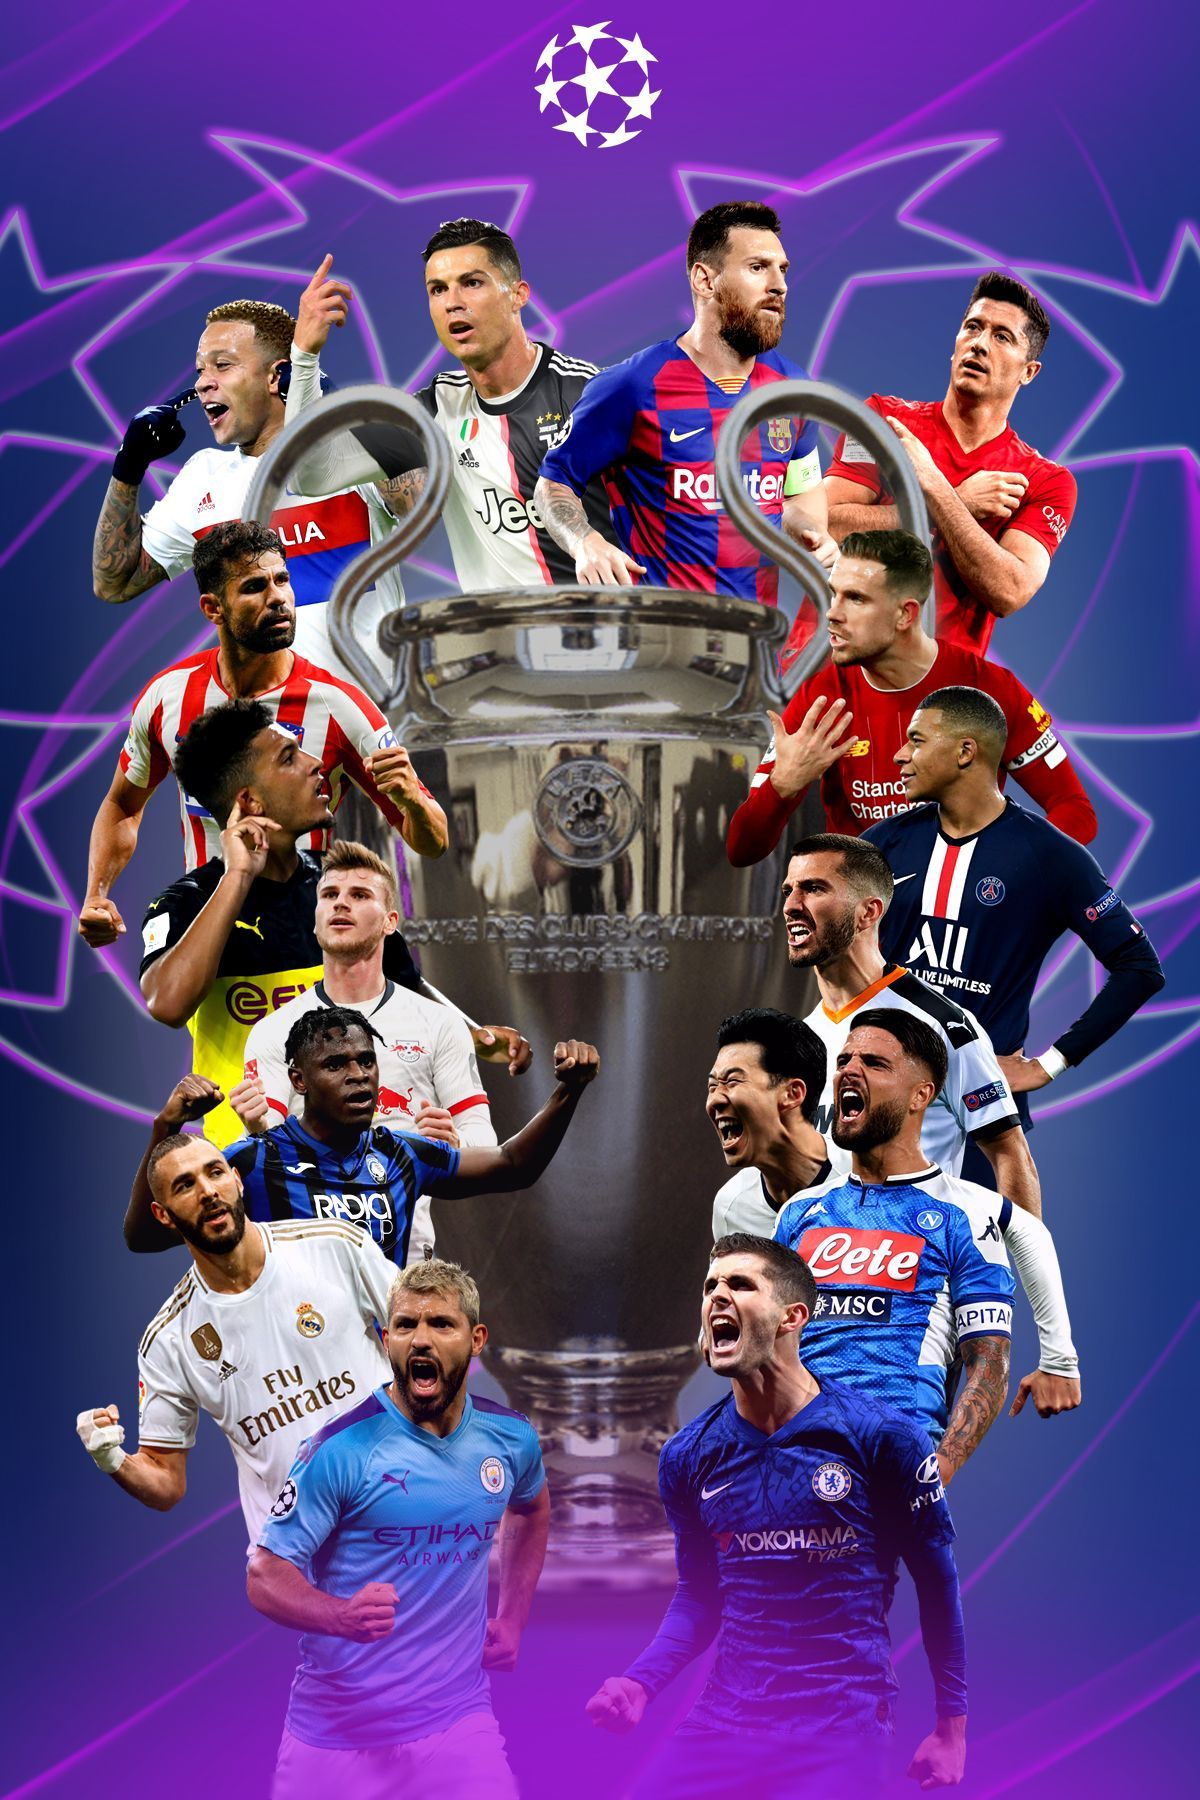 UEFA Champions League 2020 Wallpapers Wallpaper Cave